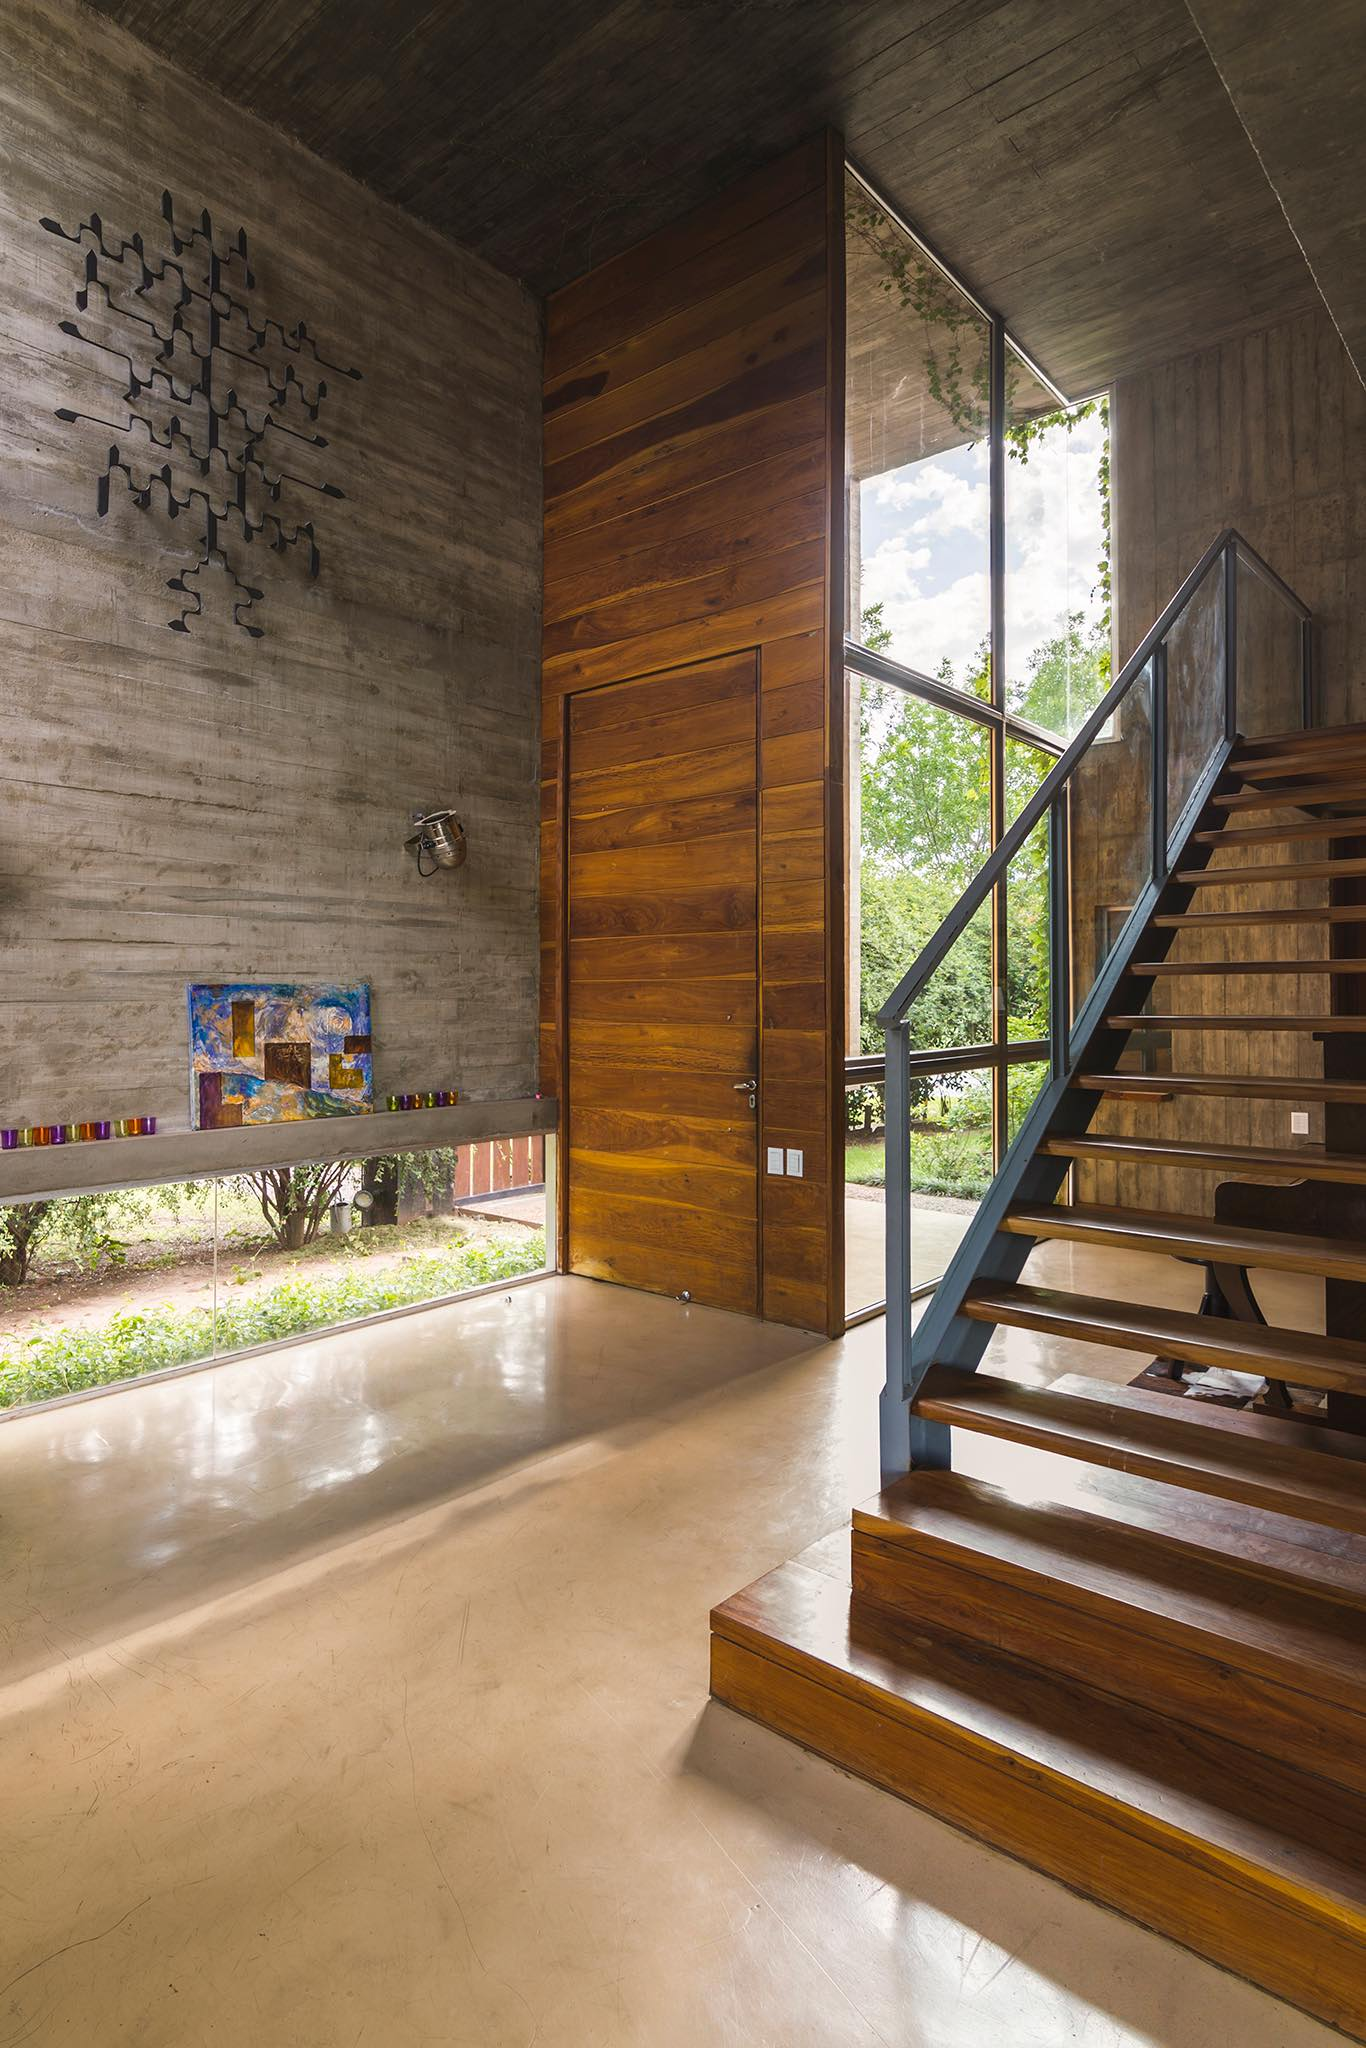 the entrance of KM house designed by Estudio Pablo Gagliardo in Argentina